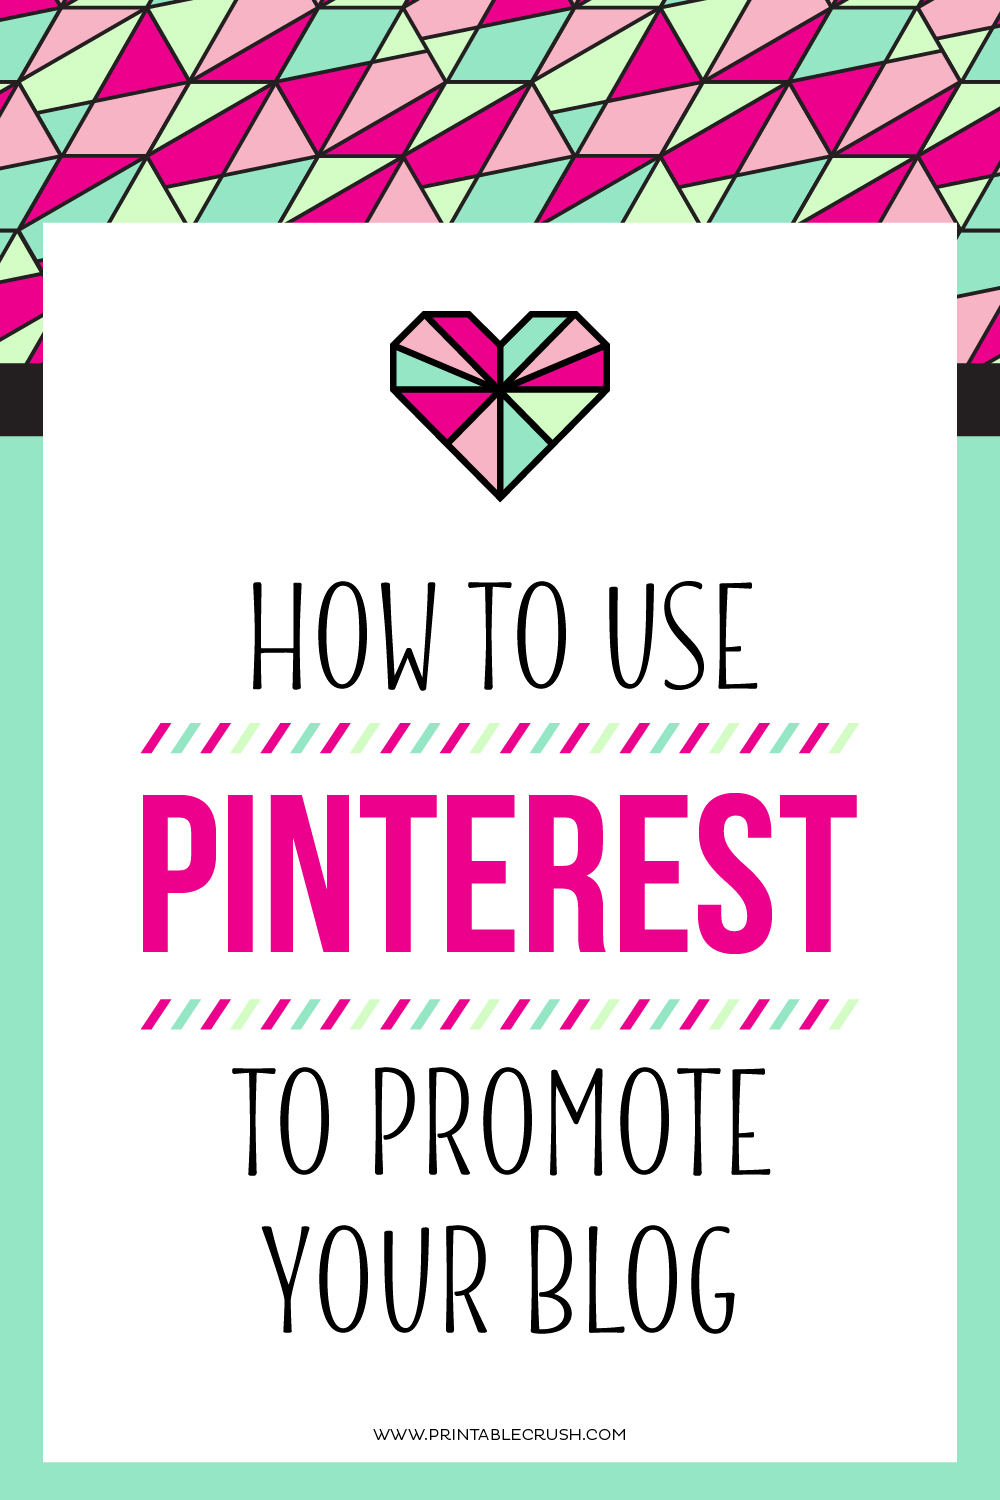 I receive 50% of my traffic from Pinterest. It is an amazing resource and you need it for your business! Learn How to Use Pinterest to Promote Your Blog.